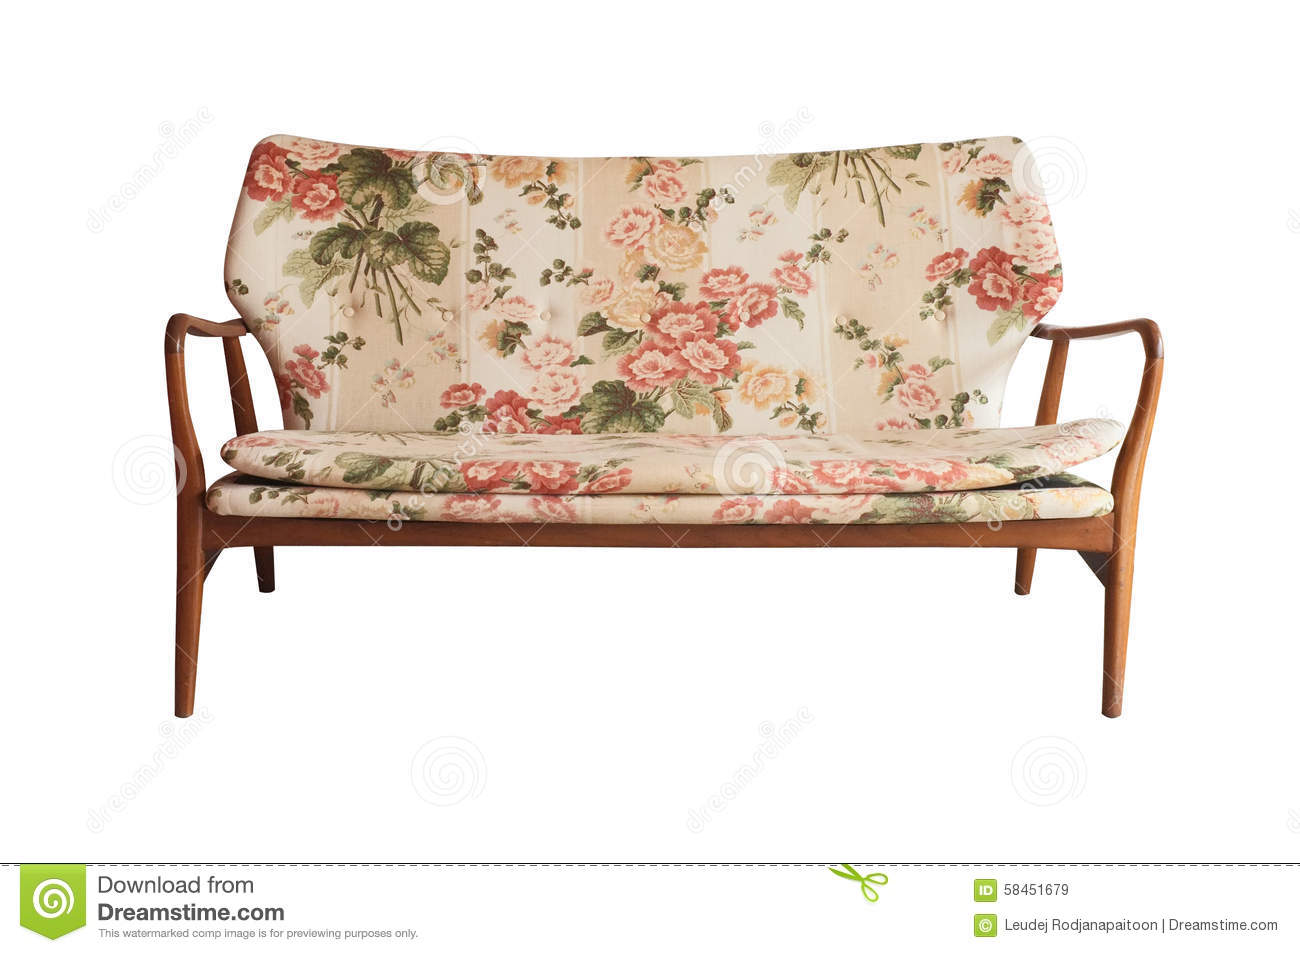 Wooden Sofa Upholstered In Floral Fabric Printed Vintage